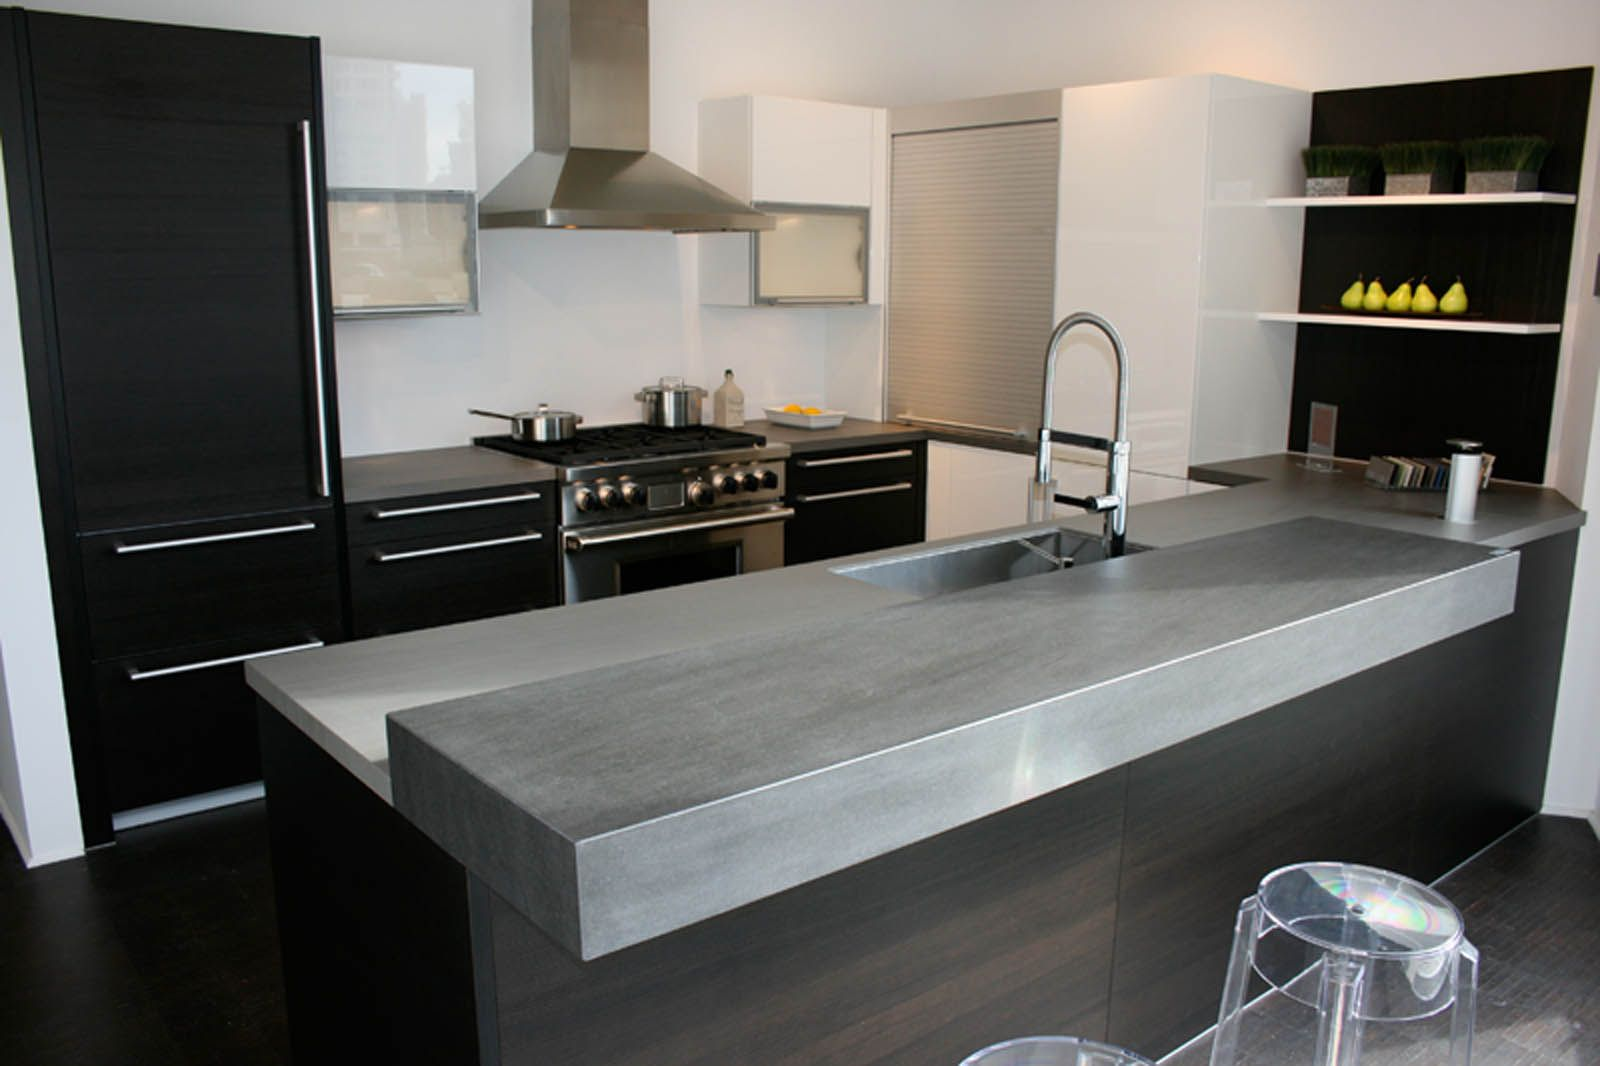 Recycled Glass Countertops San Antonio Neolith Countertop Basalt Grey Model 100 Natural